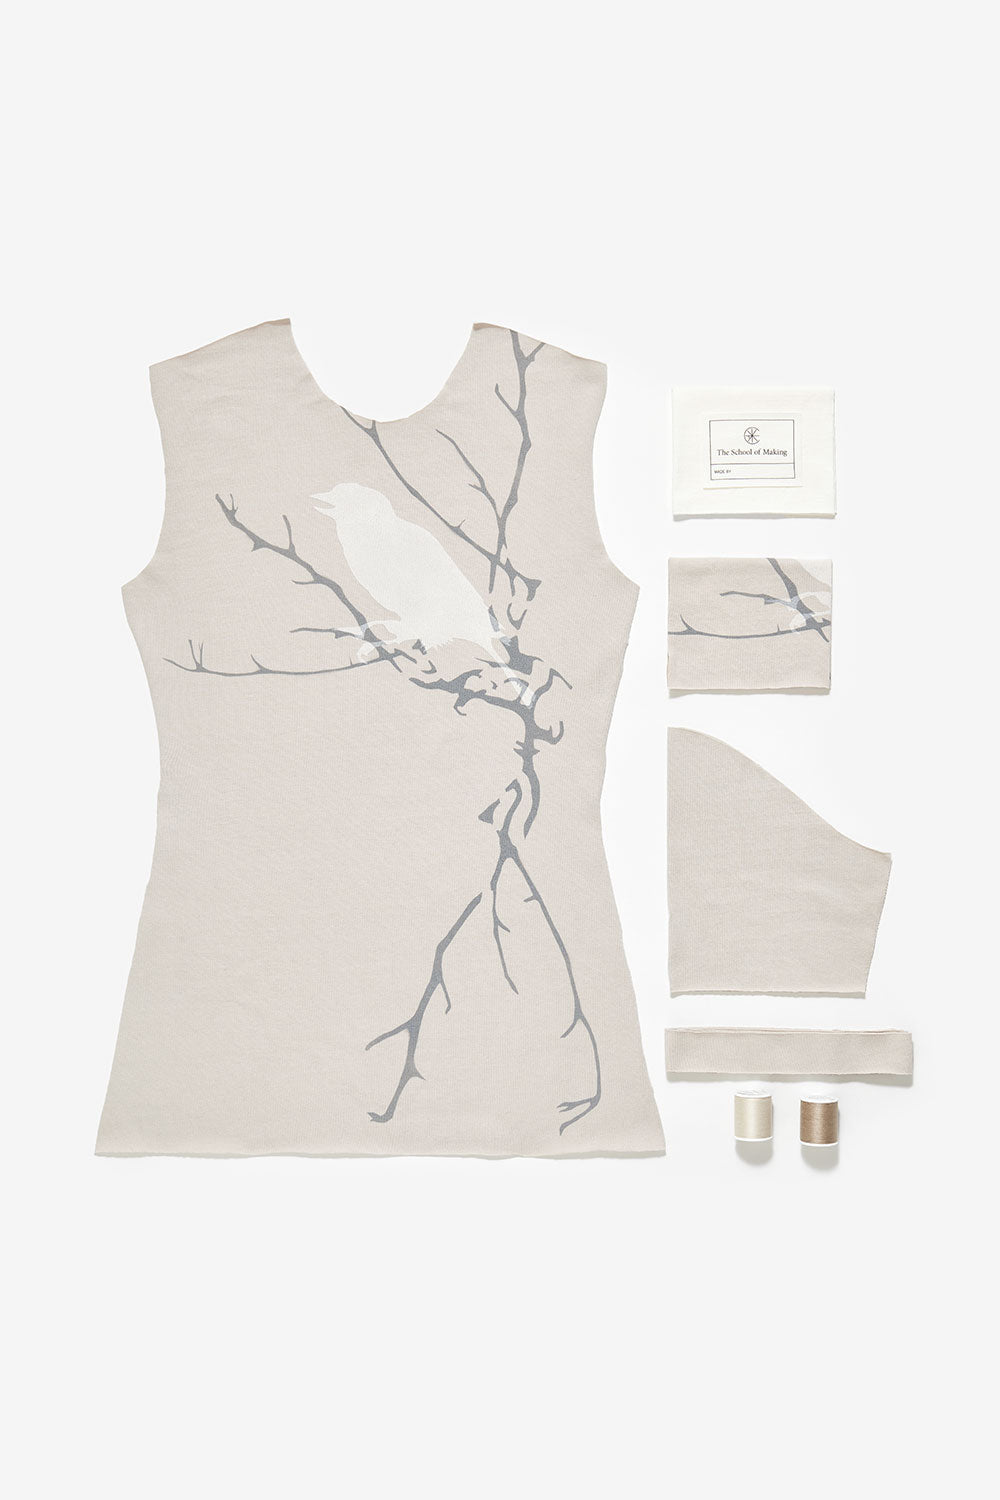 The School of Making 100% Organic Cotton Hand-Sewn DIY Top for Women